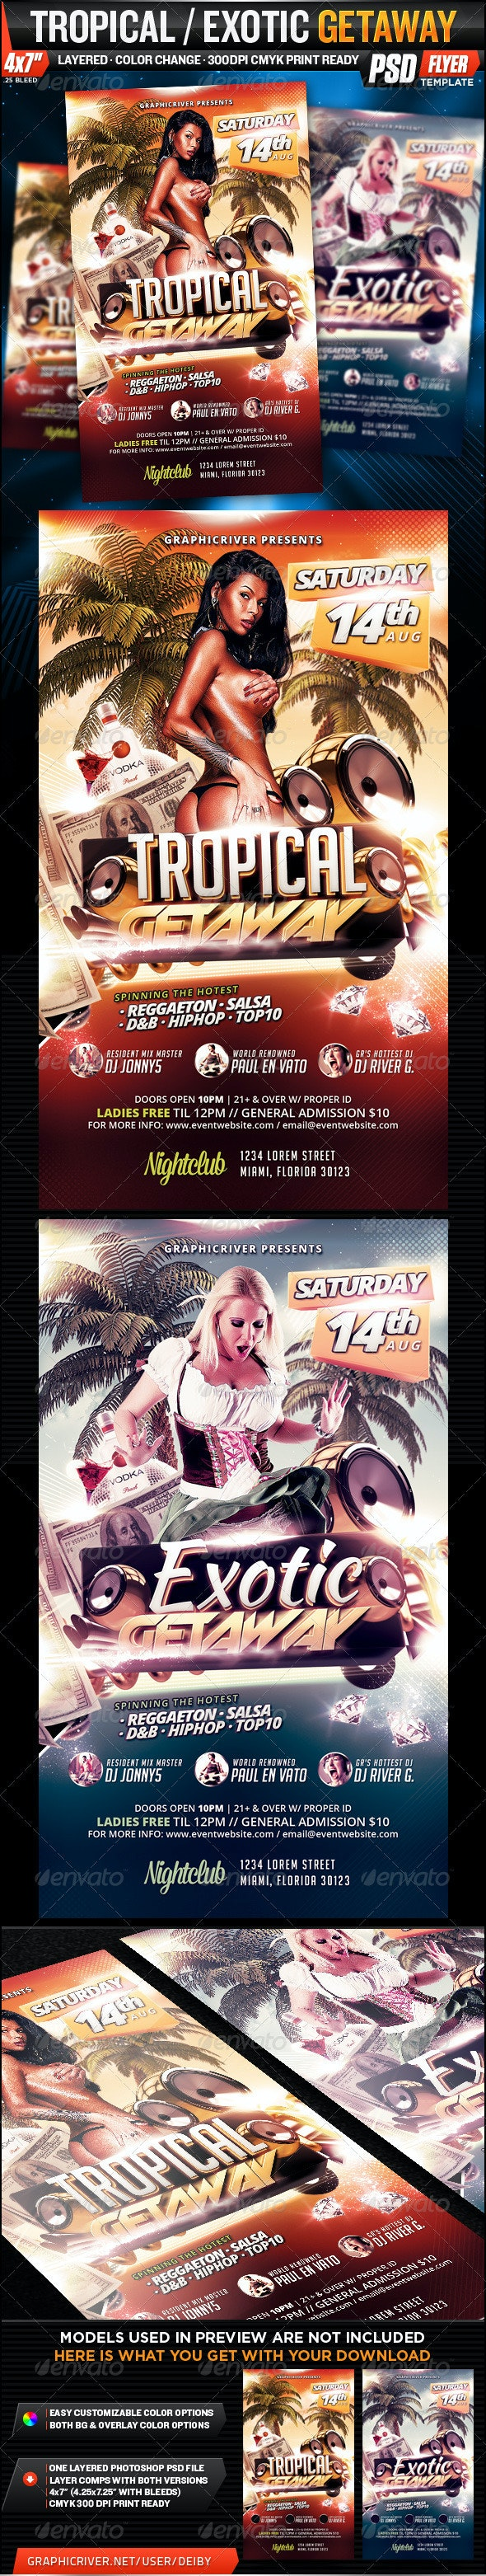 Tropical / Exotic Getaway Flyer Template - Events Flyers